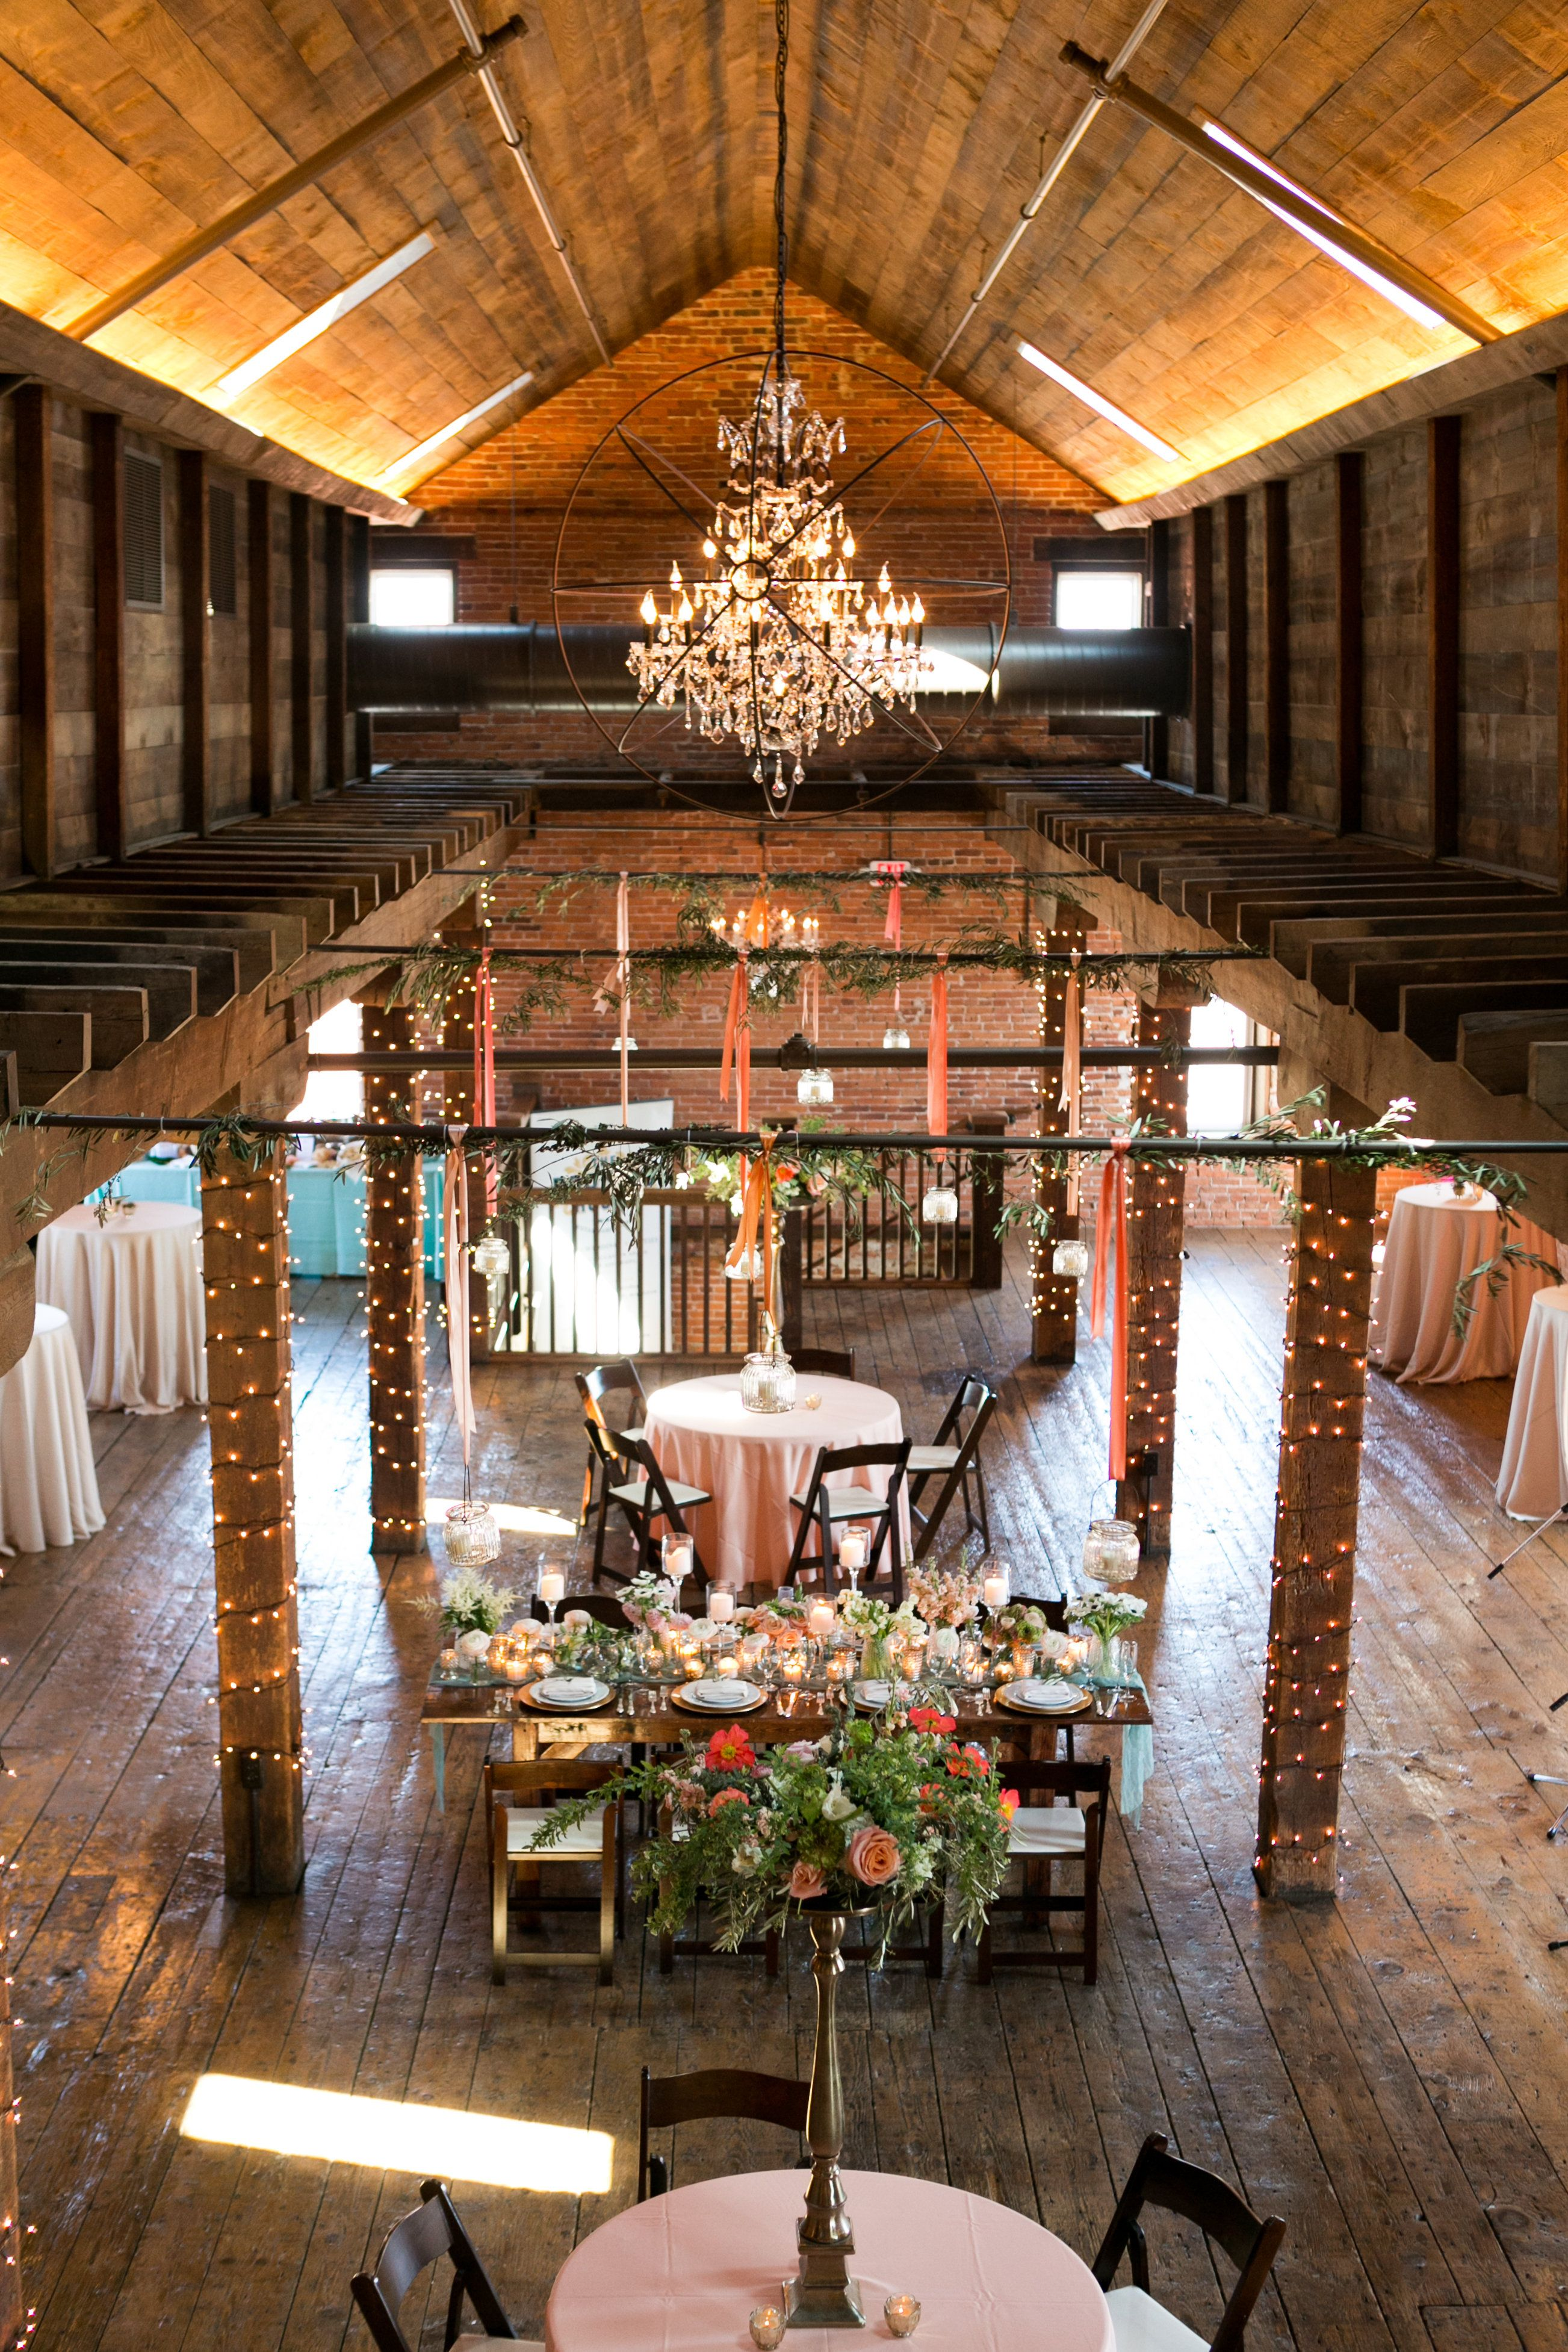 The Booking House Rustic wedding venues, Wedding